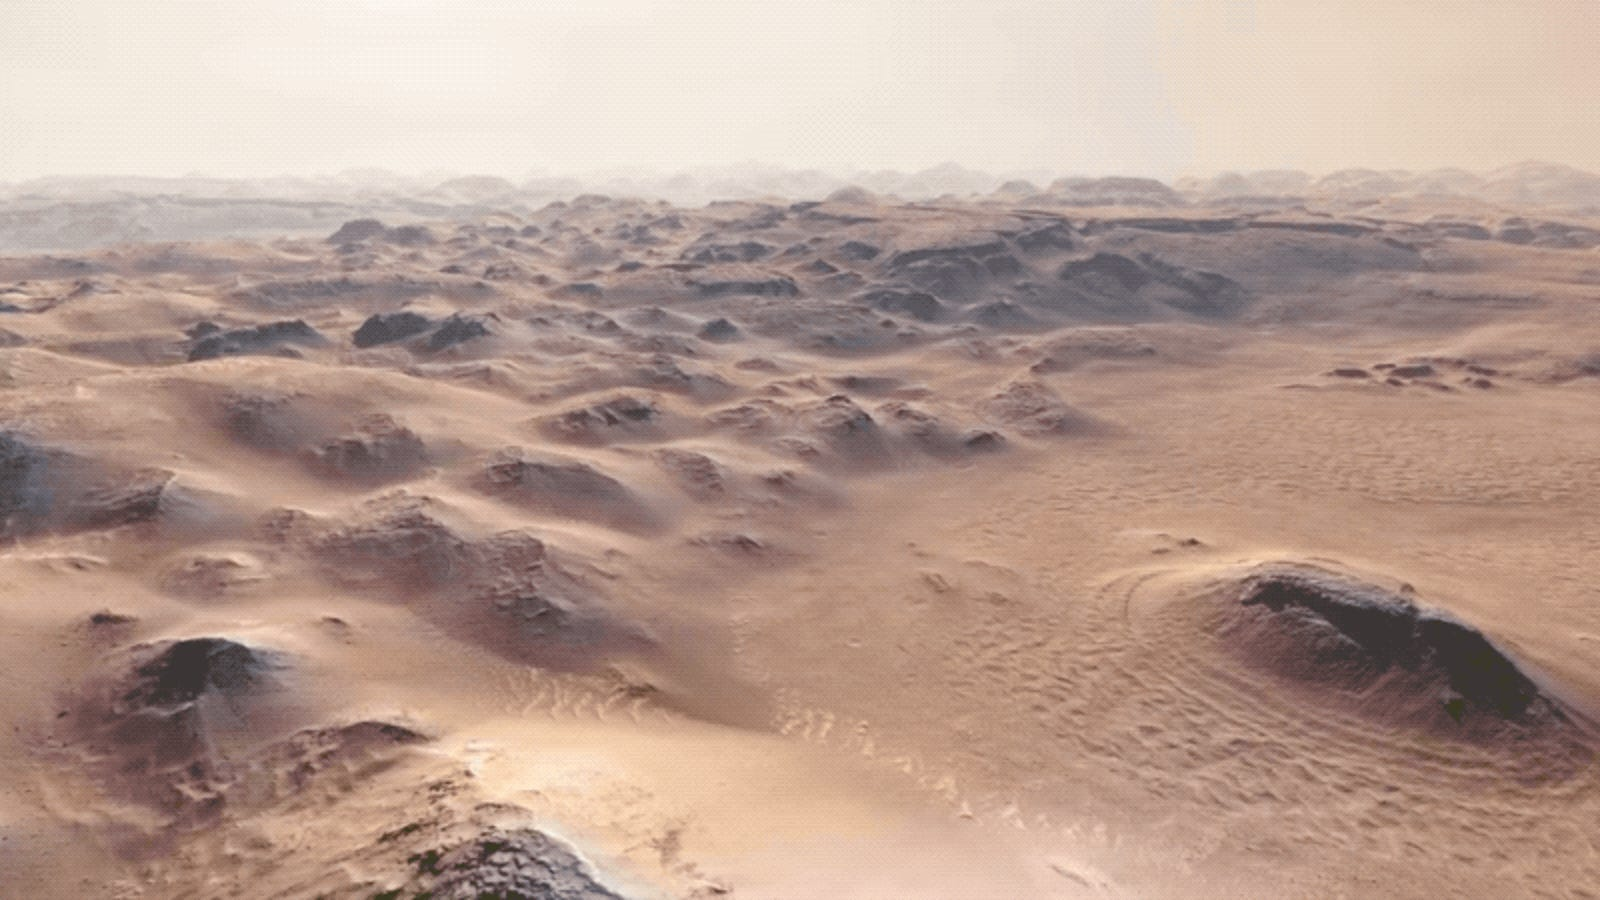 It Is Possible To Do Many Incredible Things With Computerized Data For Example This Animation Of The Martian Surface